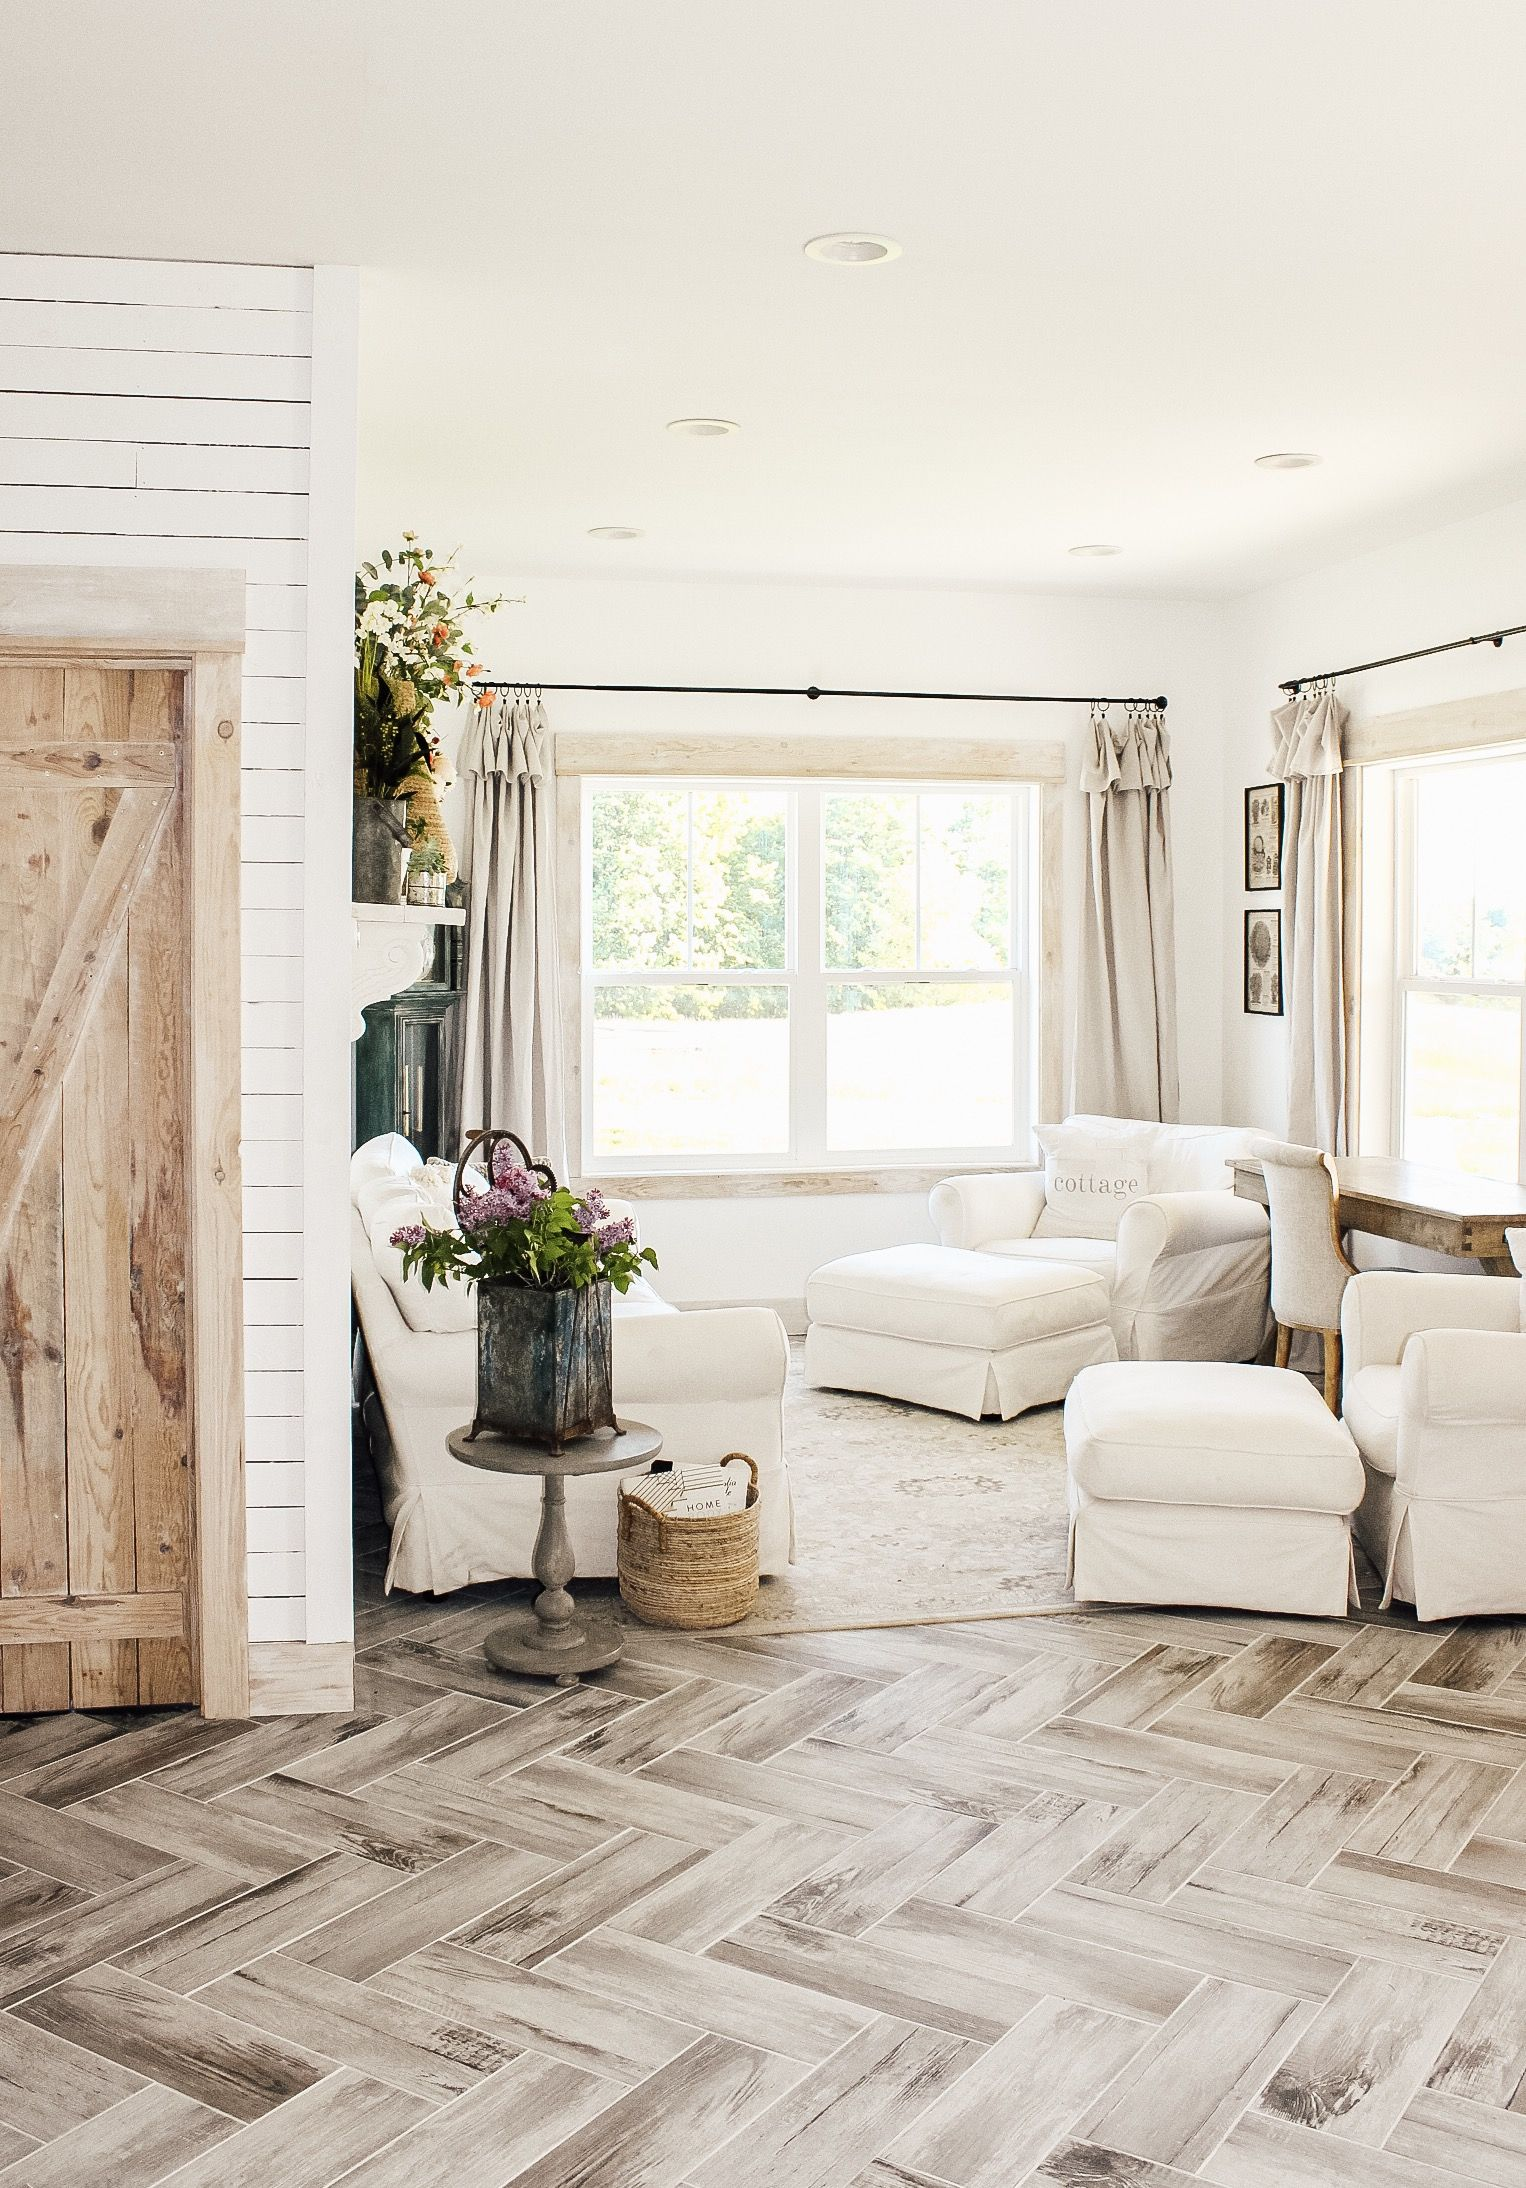 Herringbone Tile #homedepot #homedecor #cottagestyle #barndoor #farmhousestyle